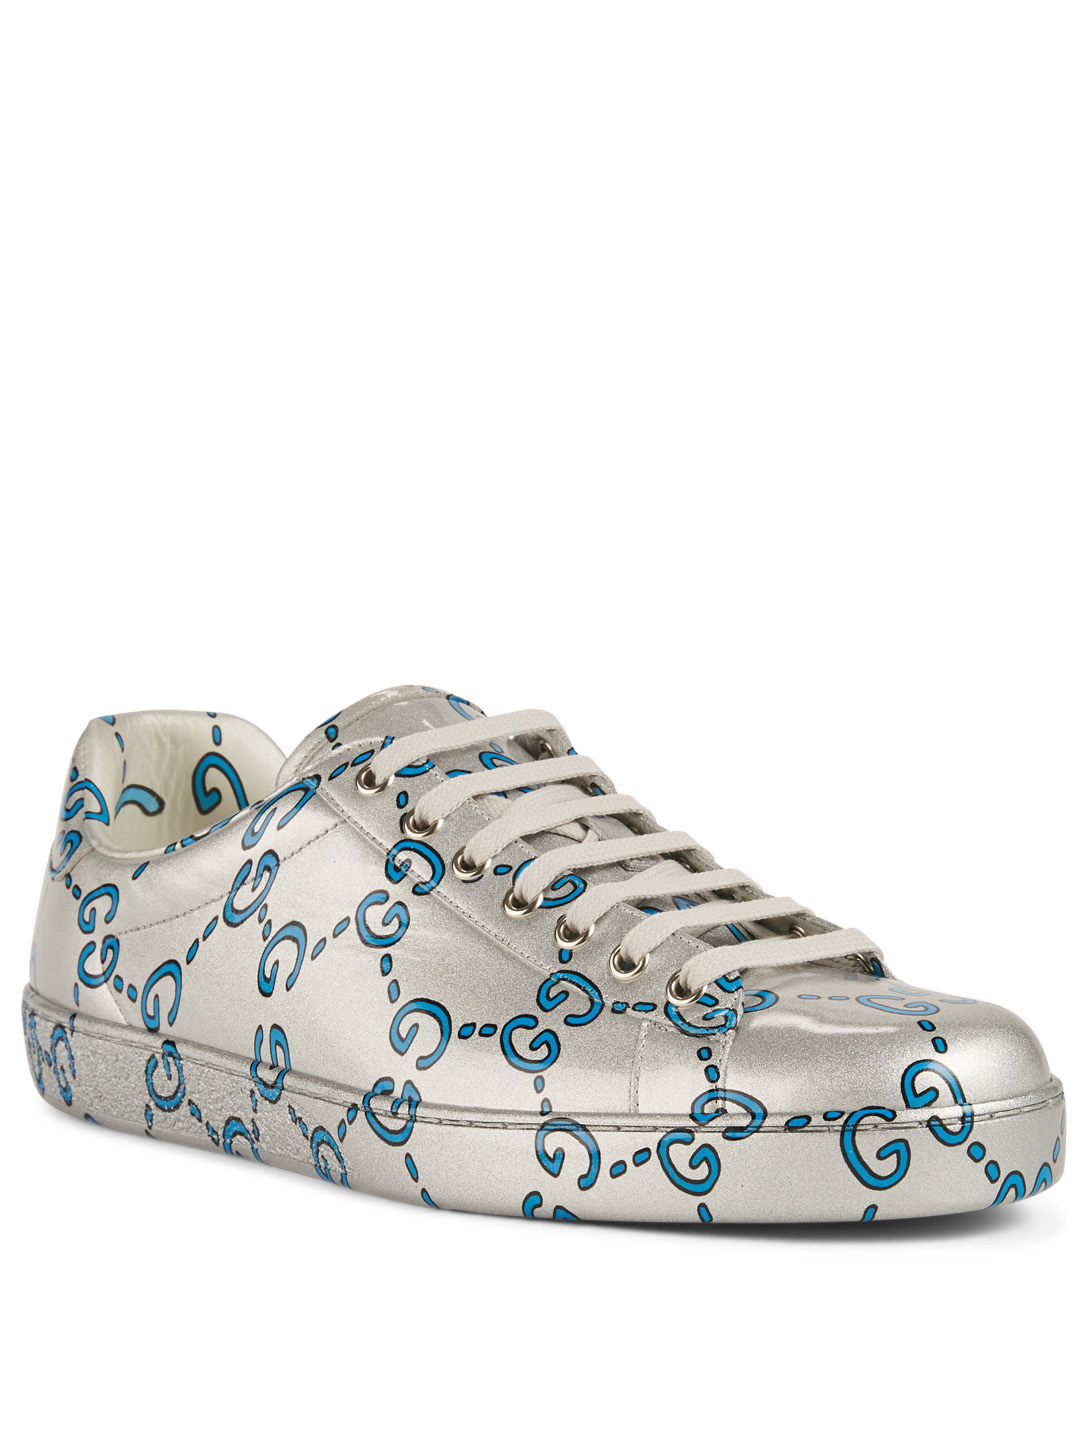 0770aa228 ... GUCCI Ace GG Coated Leather Sneakers Designers Grey ...